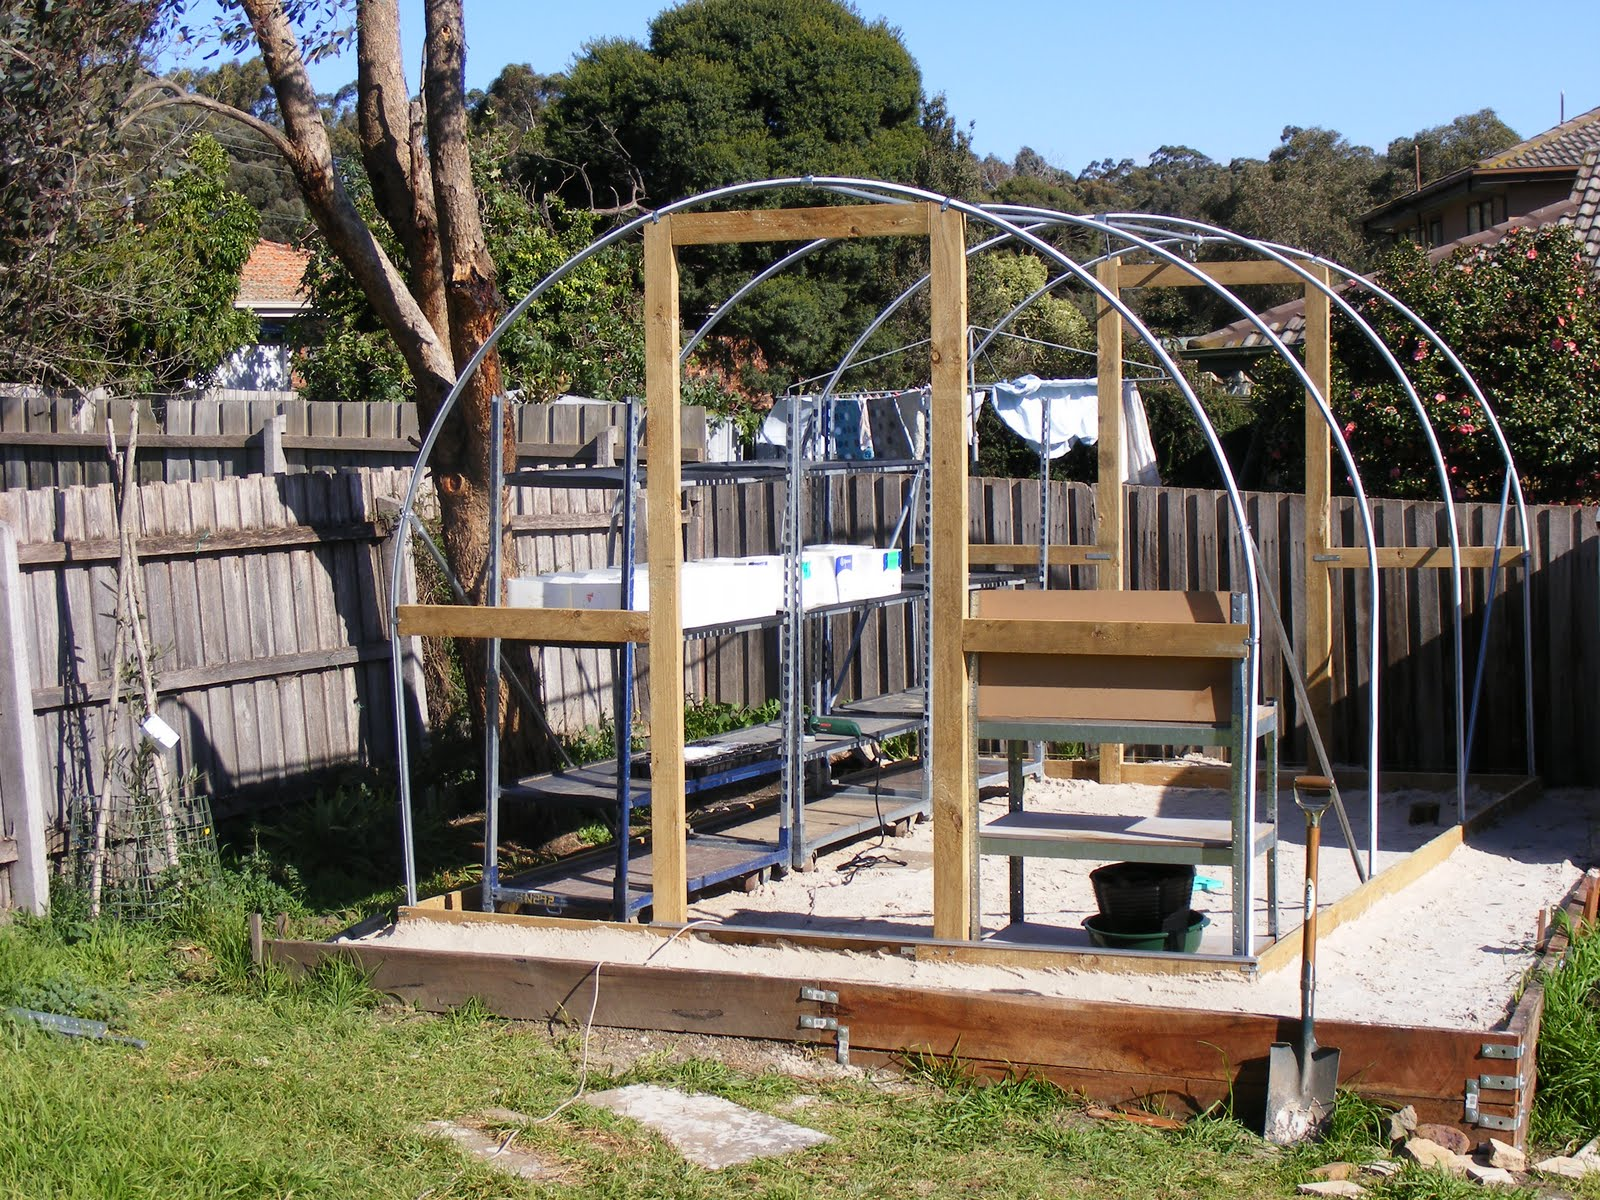 Backyard Self-Sufficiency: 3. Erection of the Greenhouse